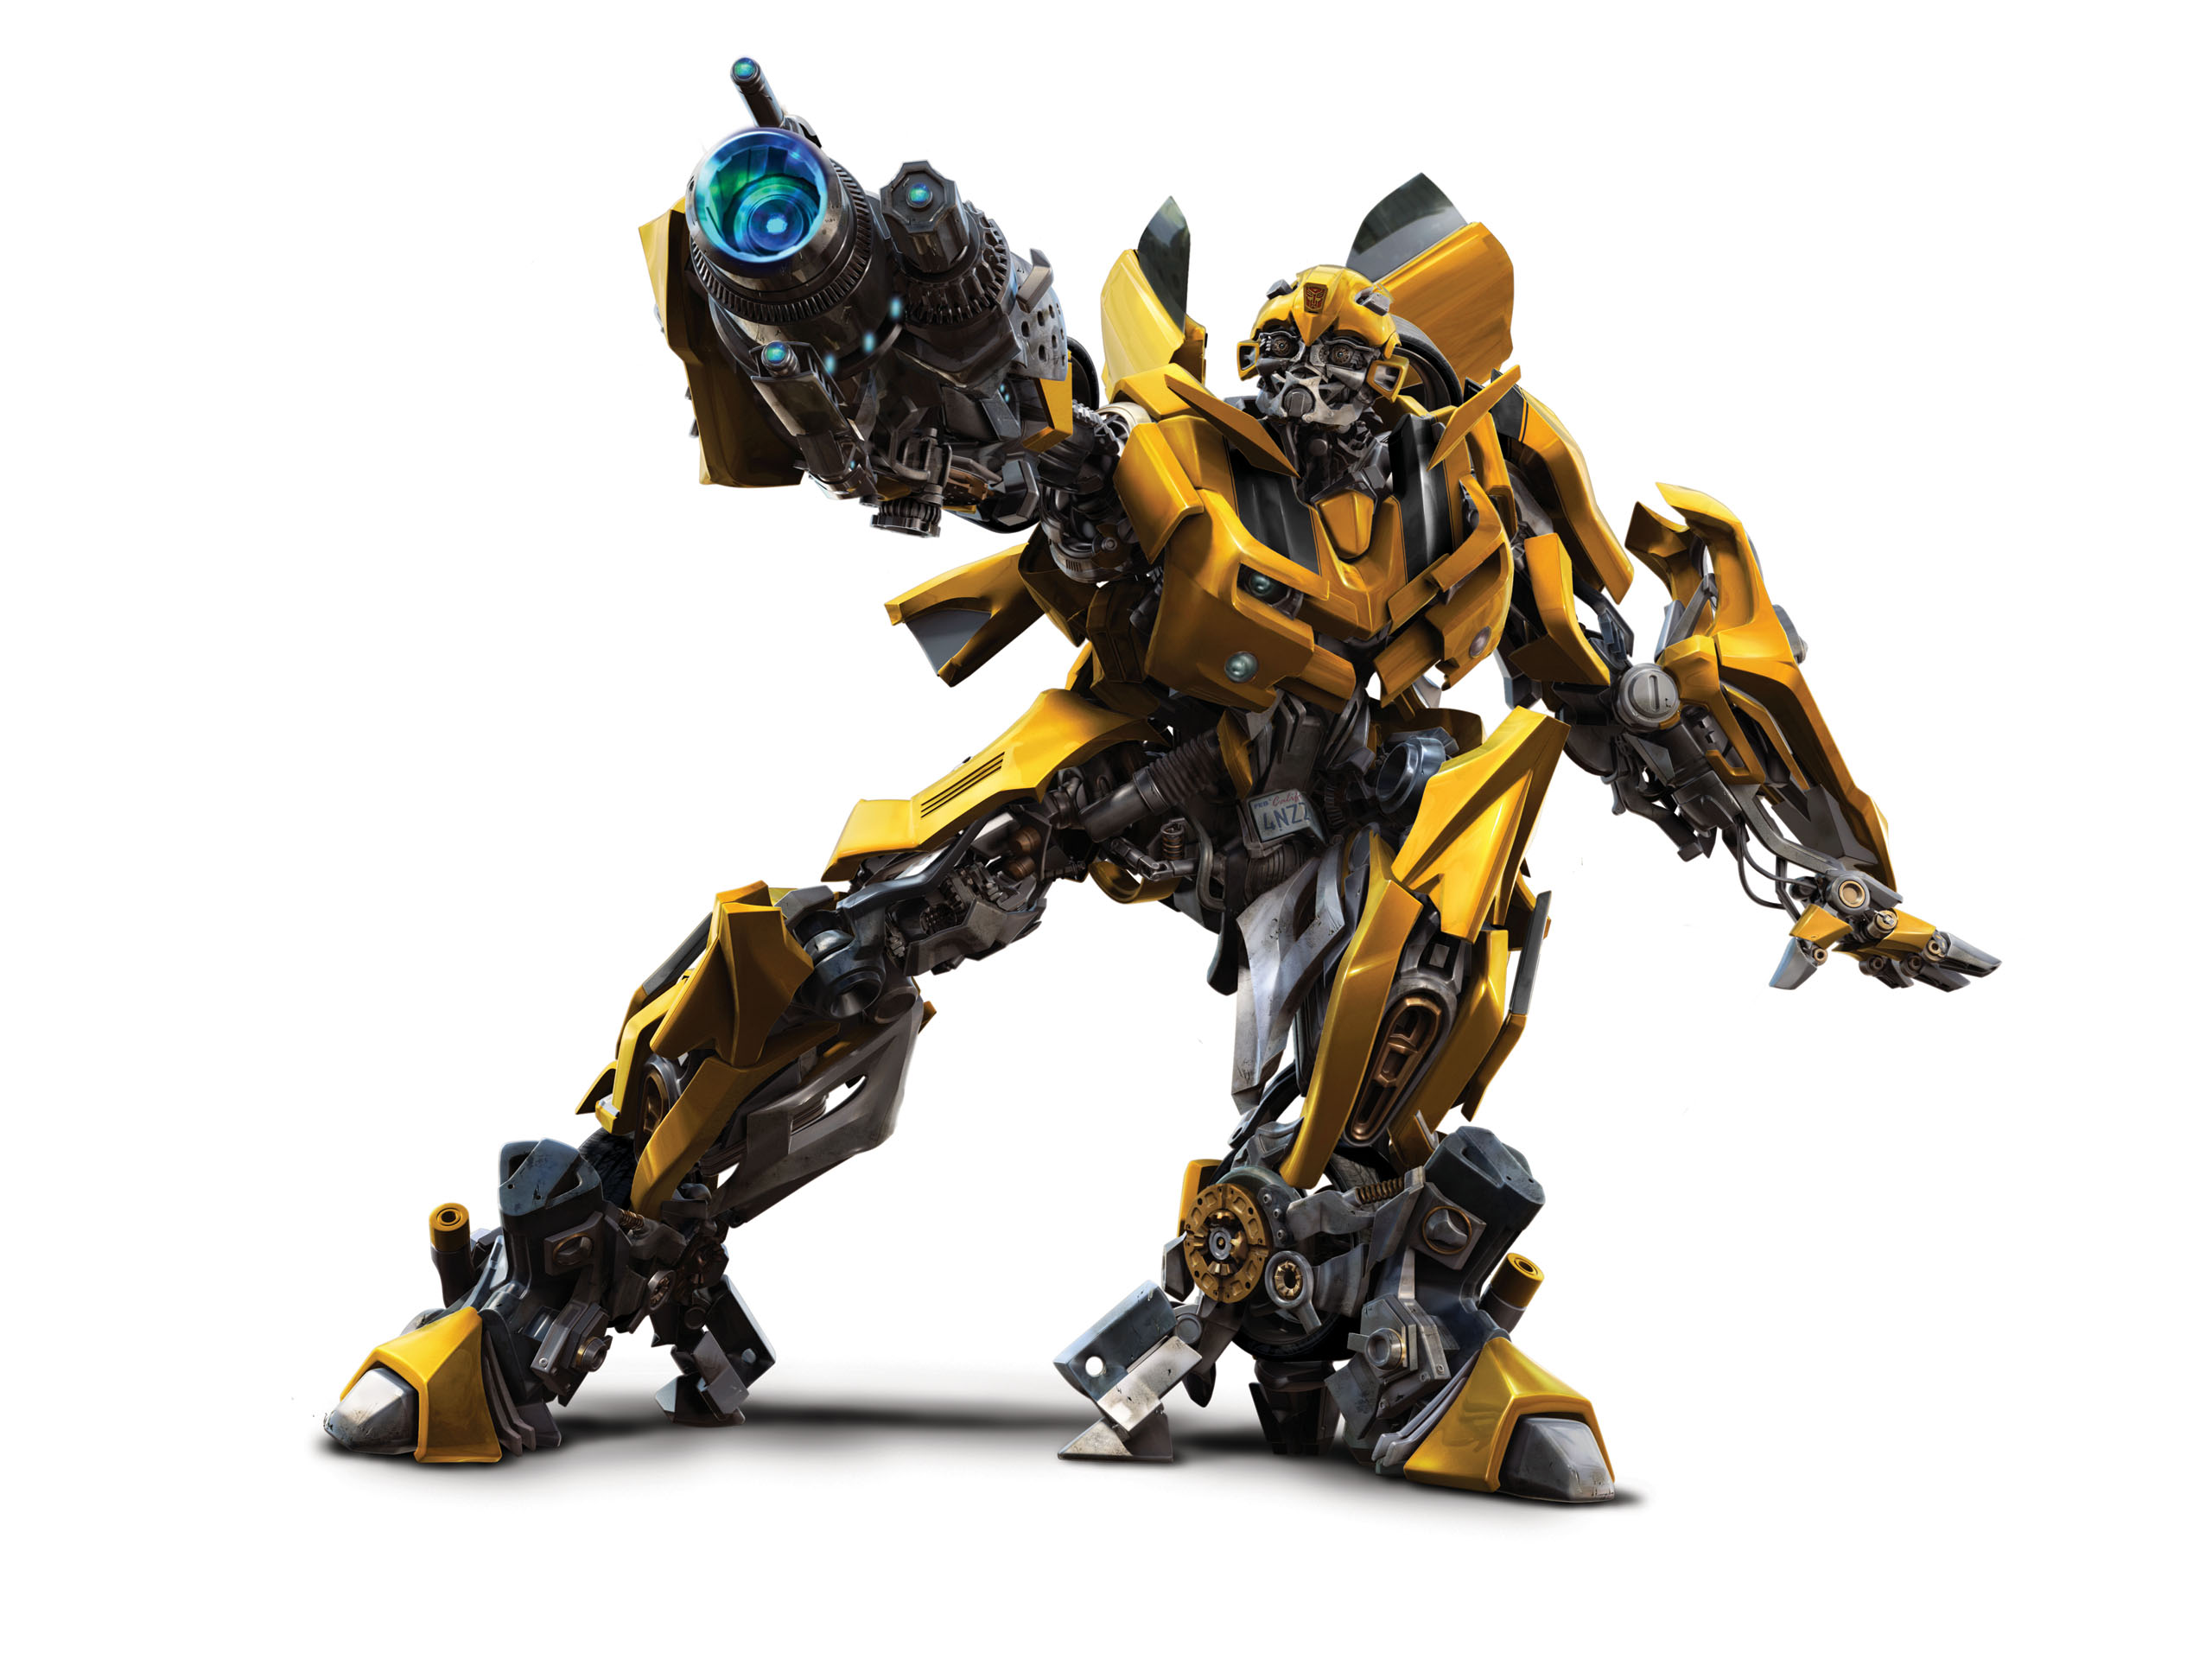 http://images.wikia.com/transformers/es/images/8/8c/Transformers-bumble-bee.jpg